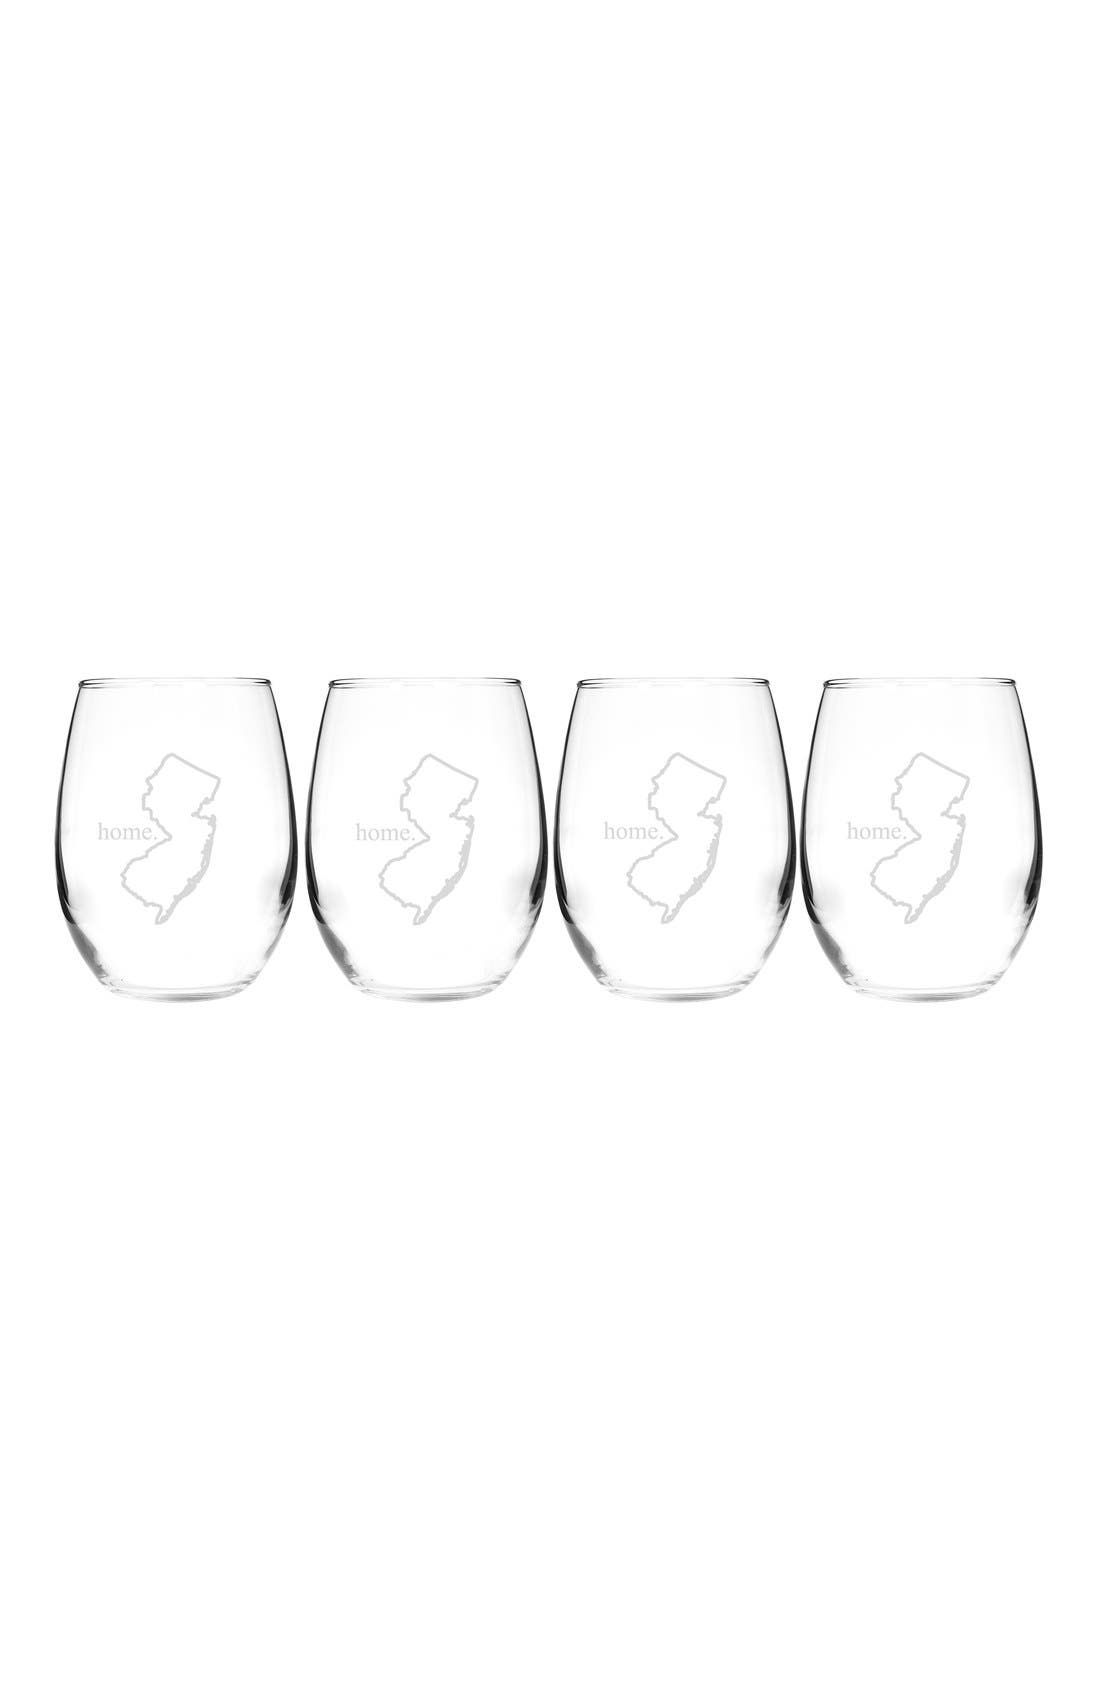 Home State Set of 4 Stemless Wine Glasses,                             Main thumbnail 32, color,